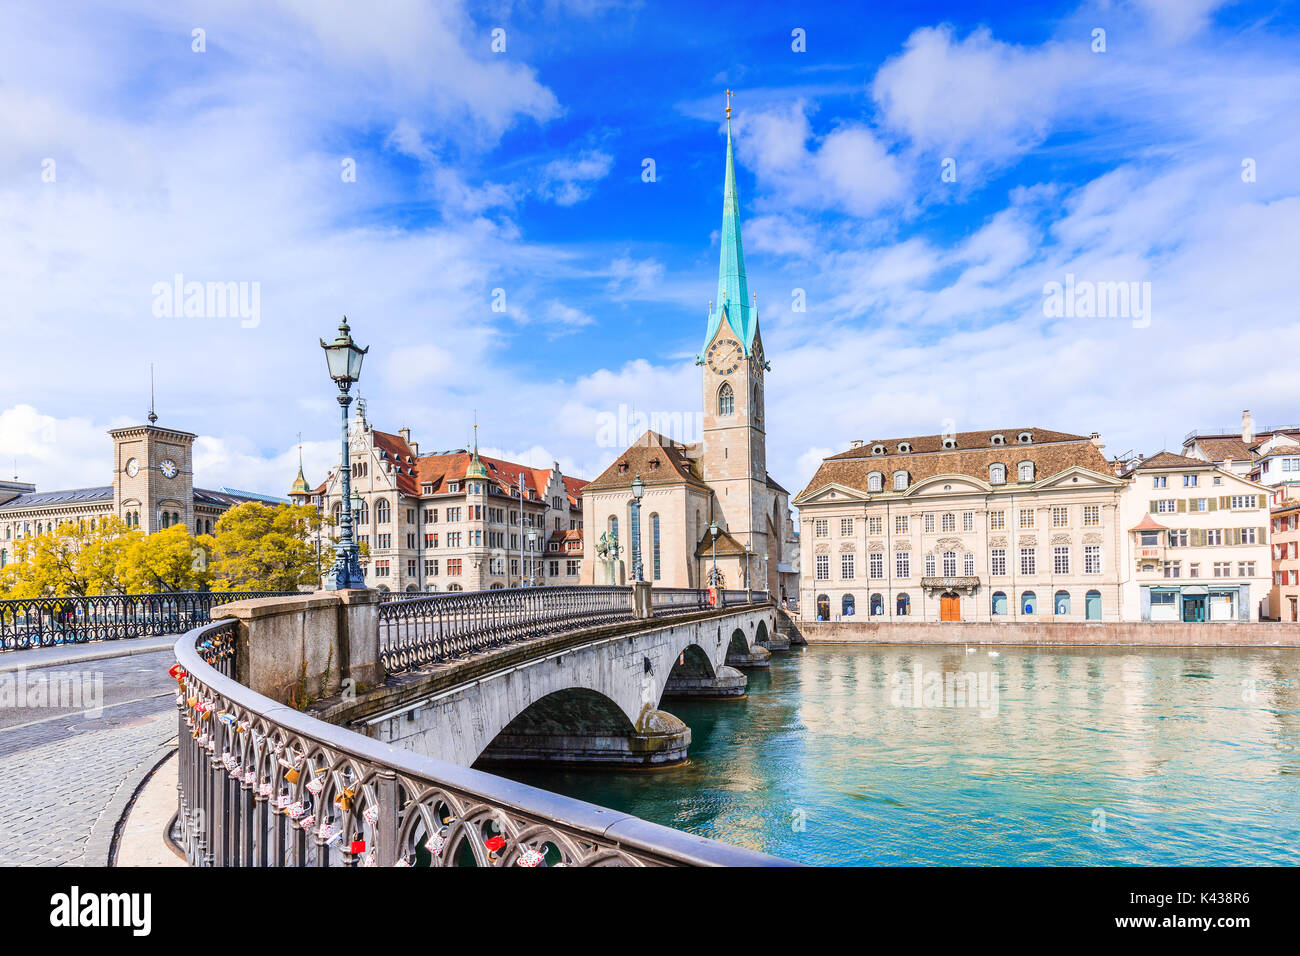 Zurich, Switzerland. View of the historic city center with famous Fraumunster Church, on the Limmat river. - Stock Image